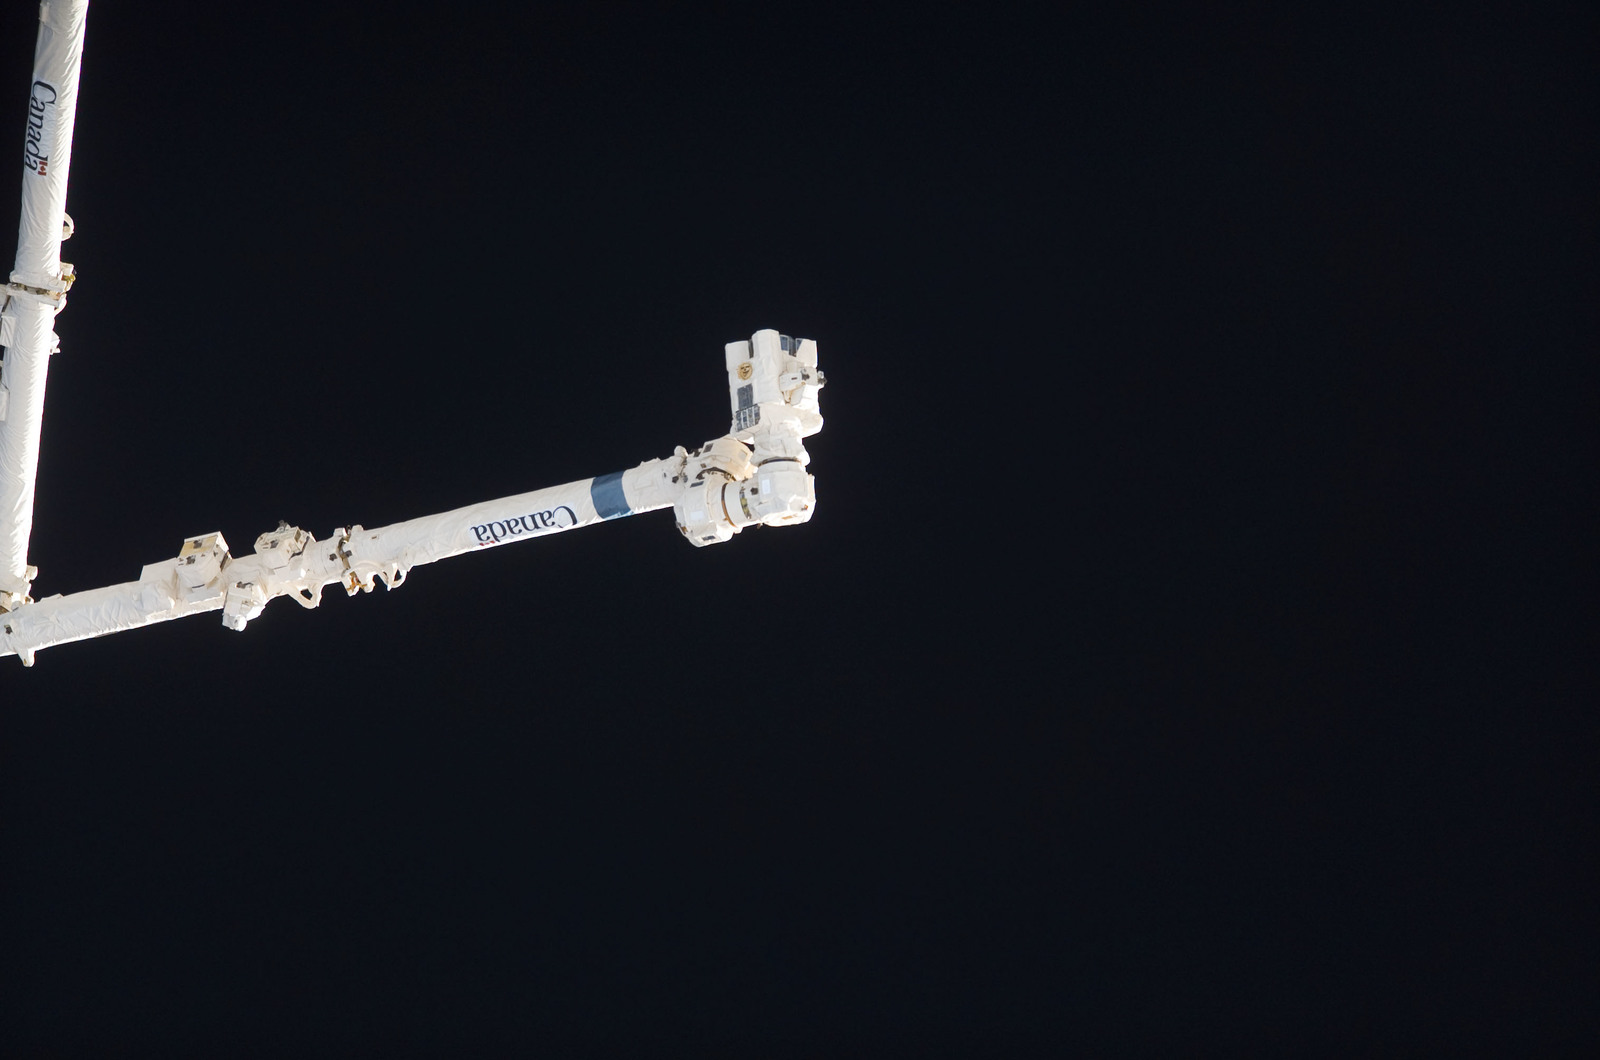 S115E05403 - STS-115 - ISS during approach of the STS-115 Space Shuttle Atlantis